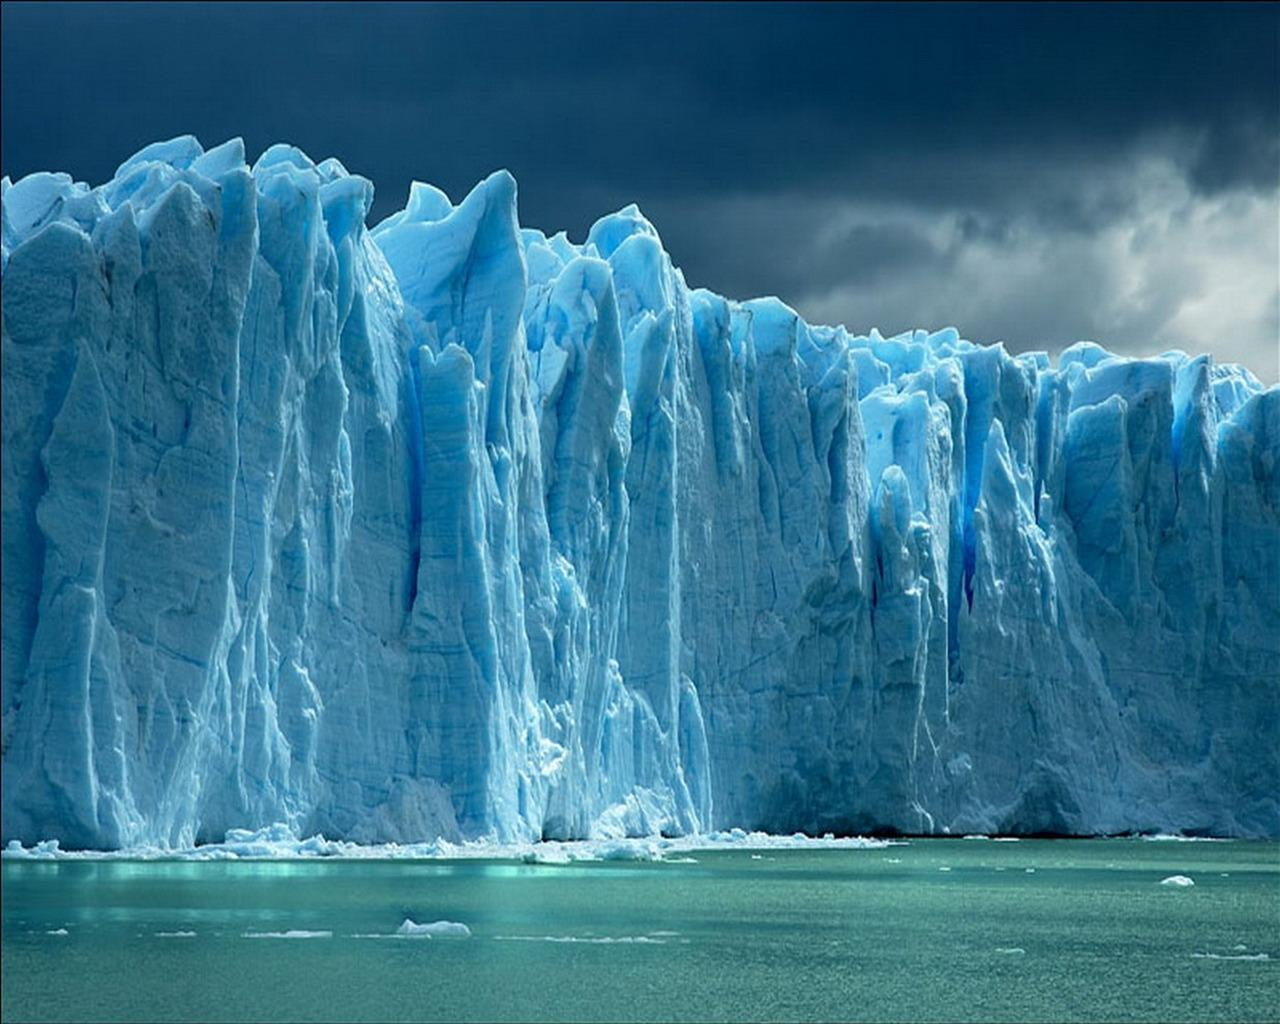 Icebergs melting